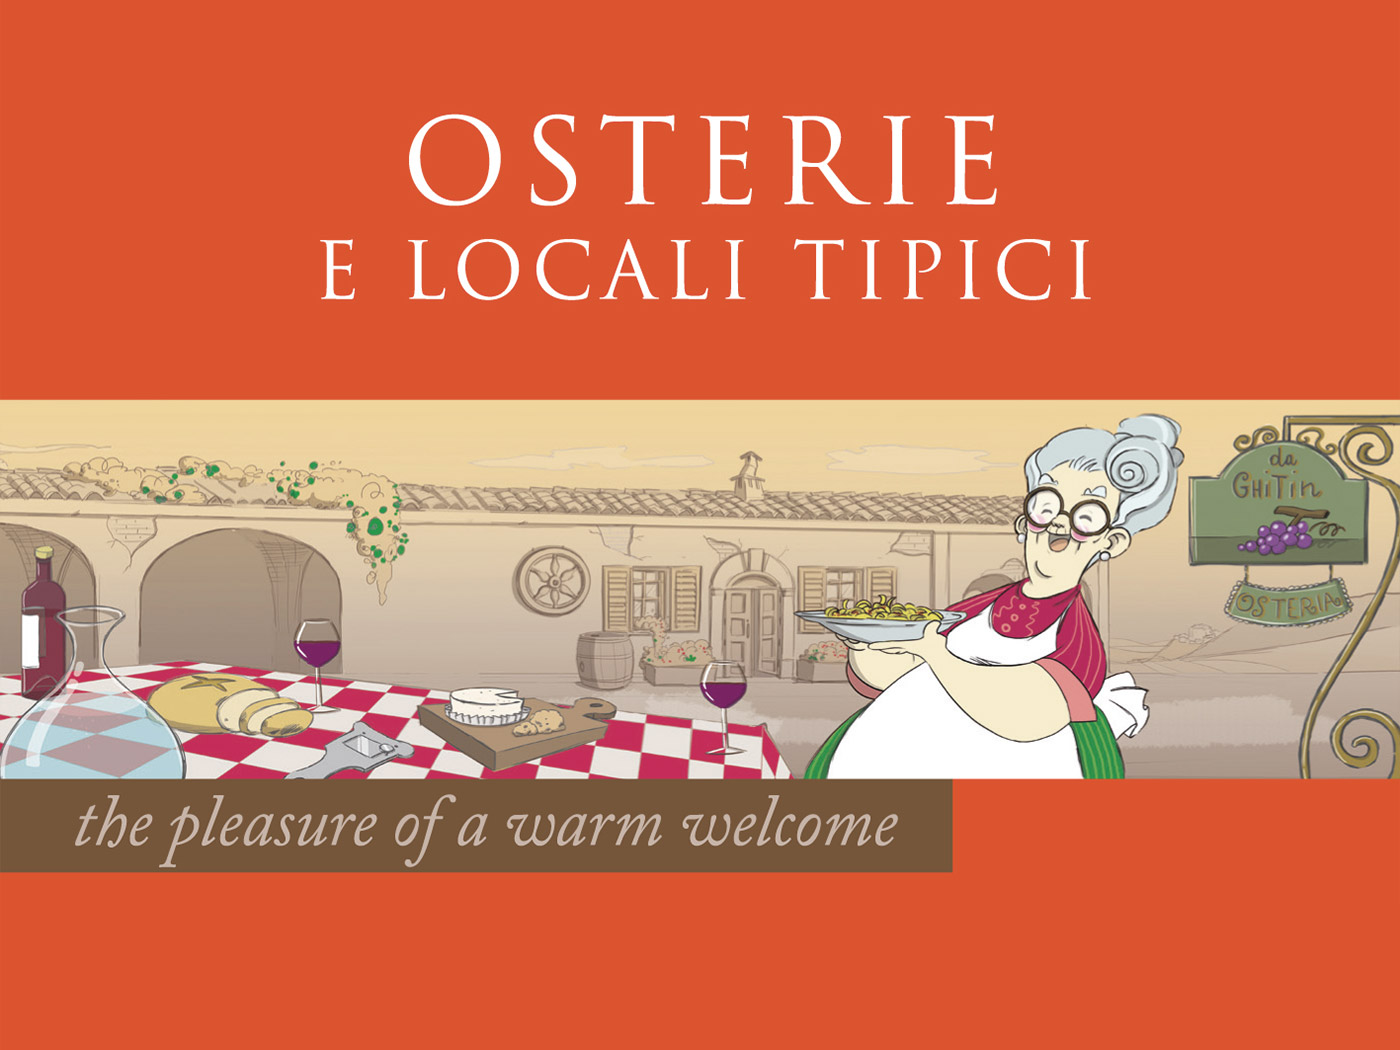 Osterias and typical-style eateries